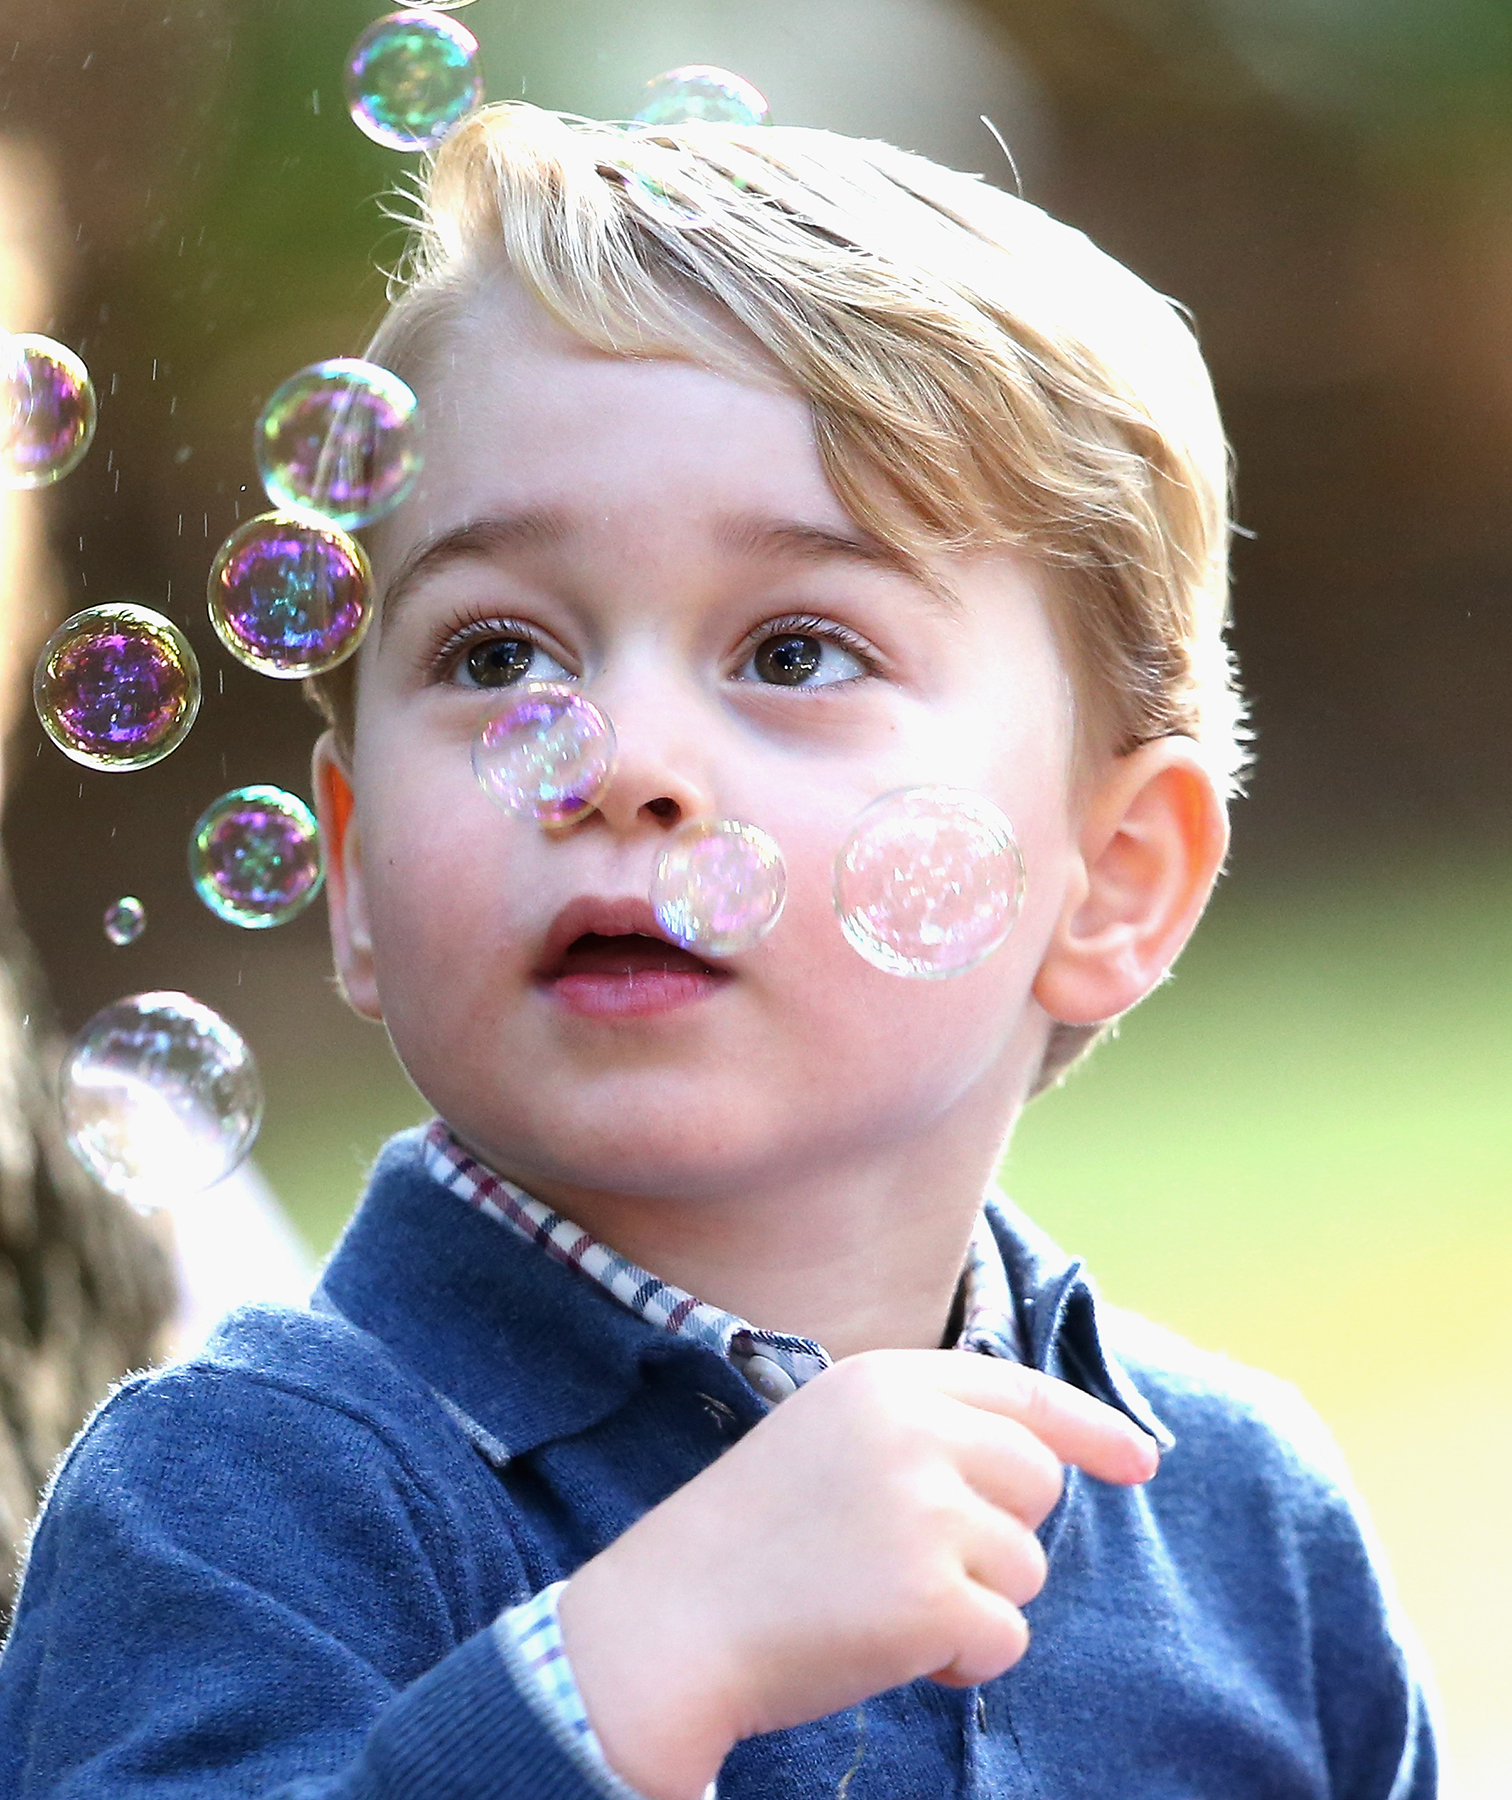 Prince George playing with bubbles